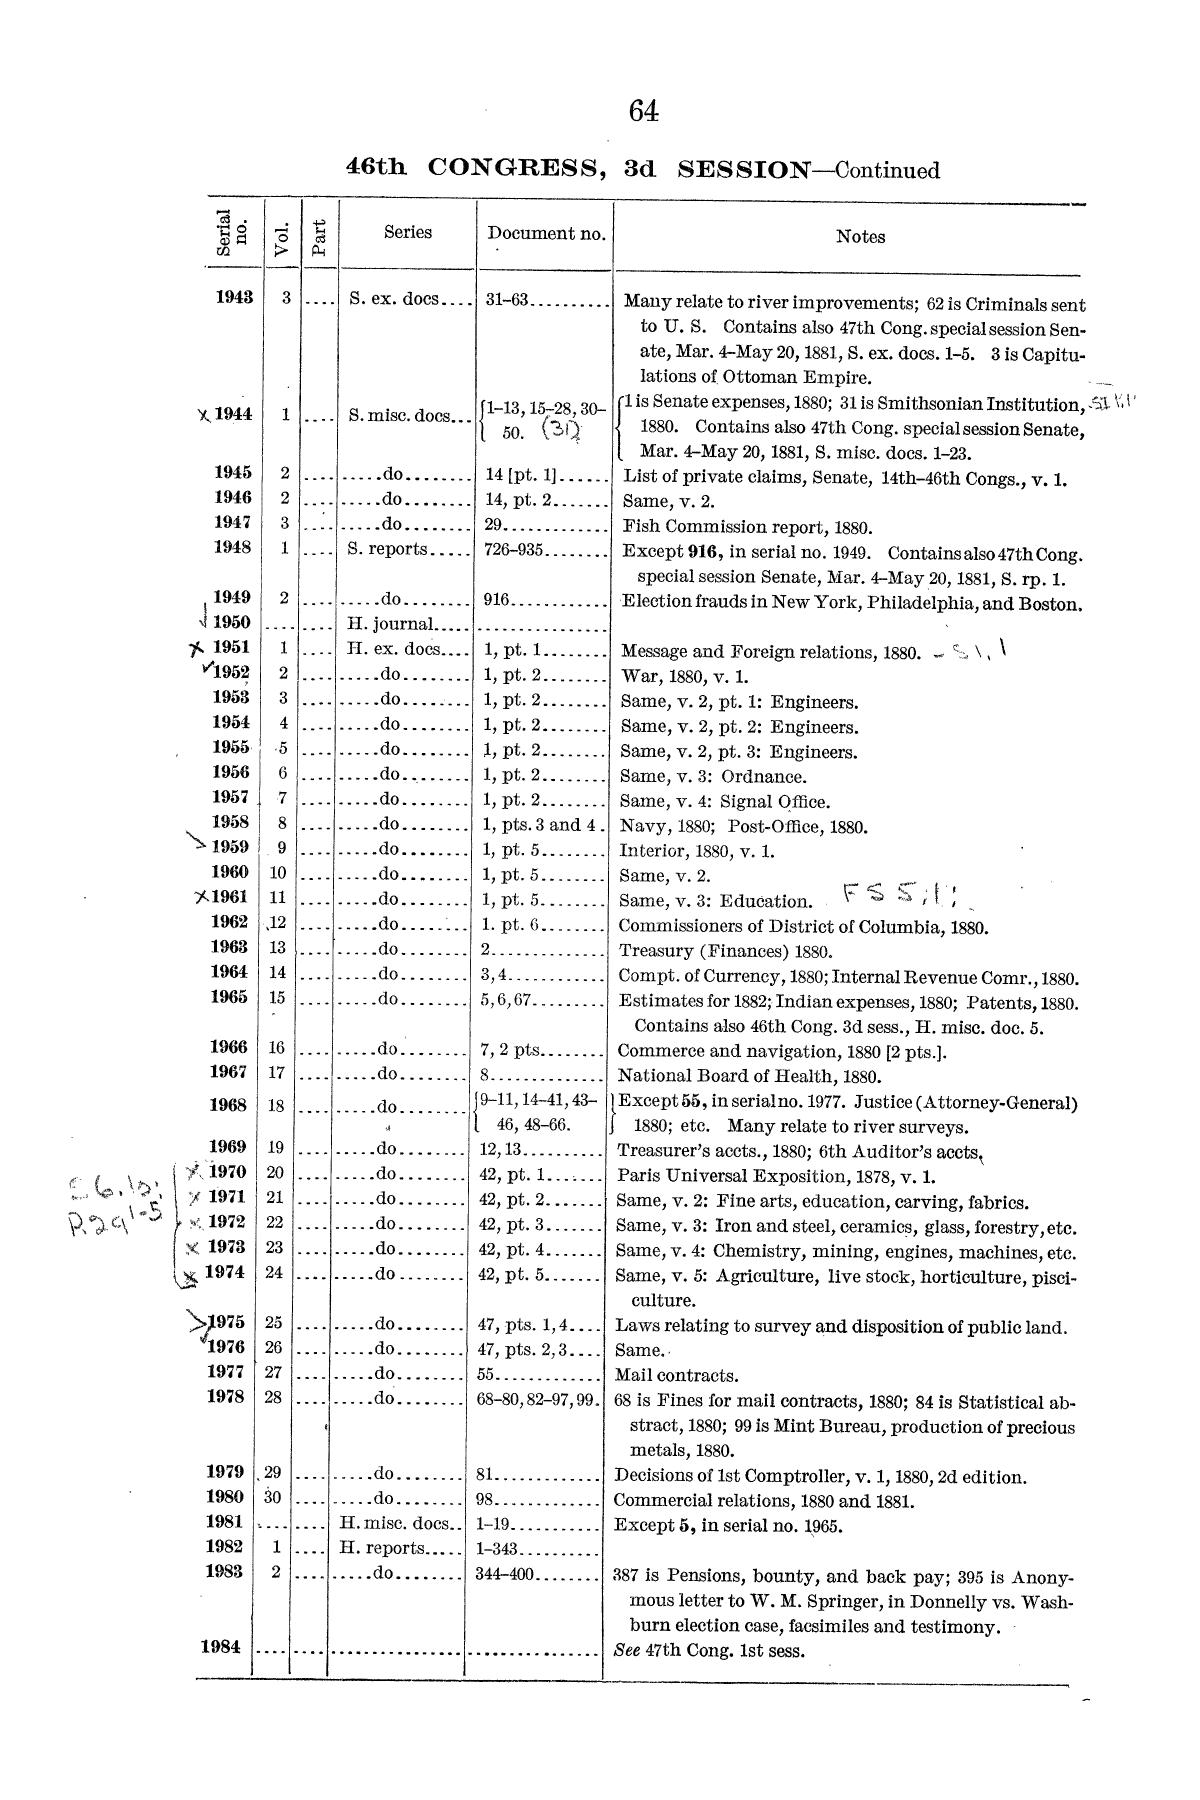 Checklist of United States Public Documents, 1789-1909, Third Edition Revised and Enlarged, Volume 1, Lists of Congressional and Departmental Publications                                                                                                      64